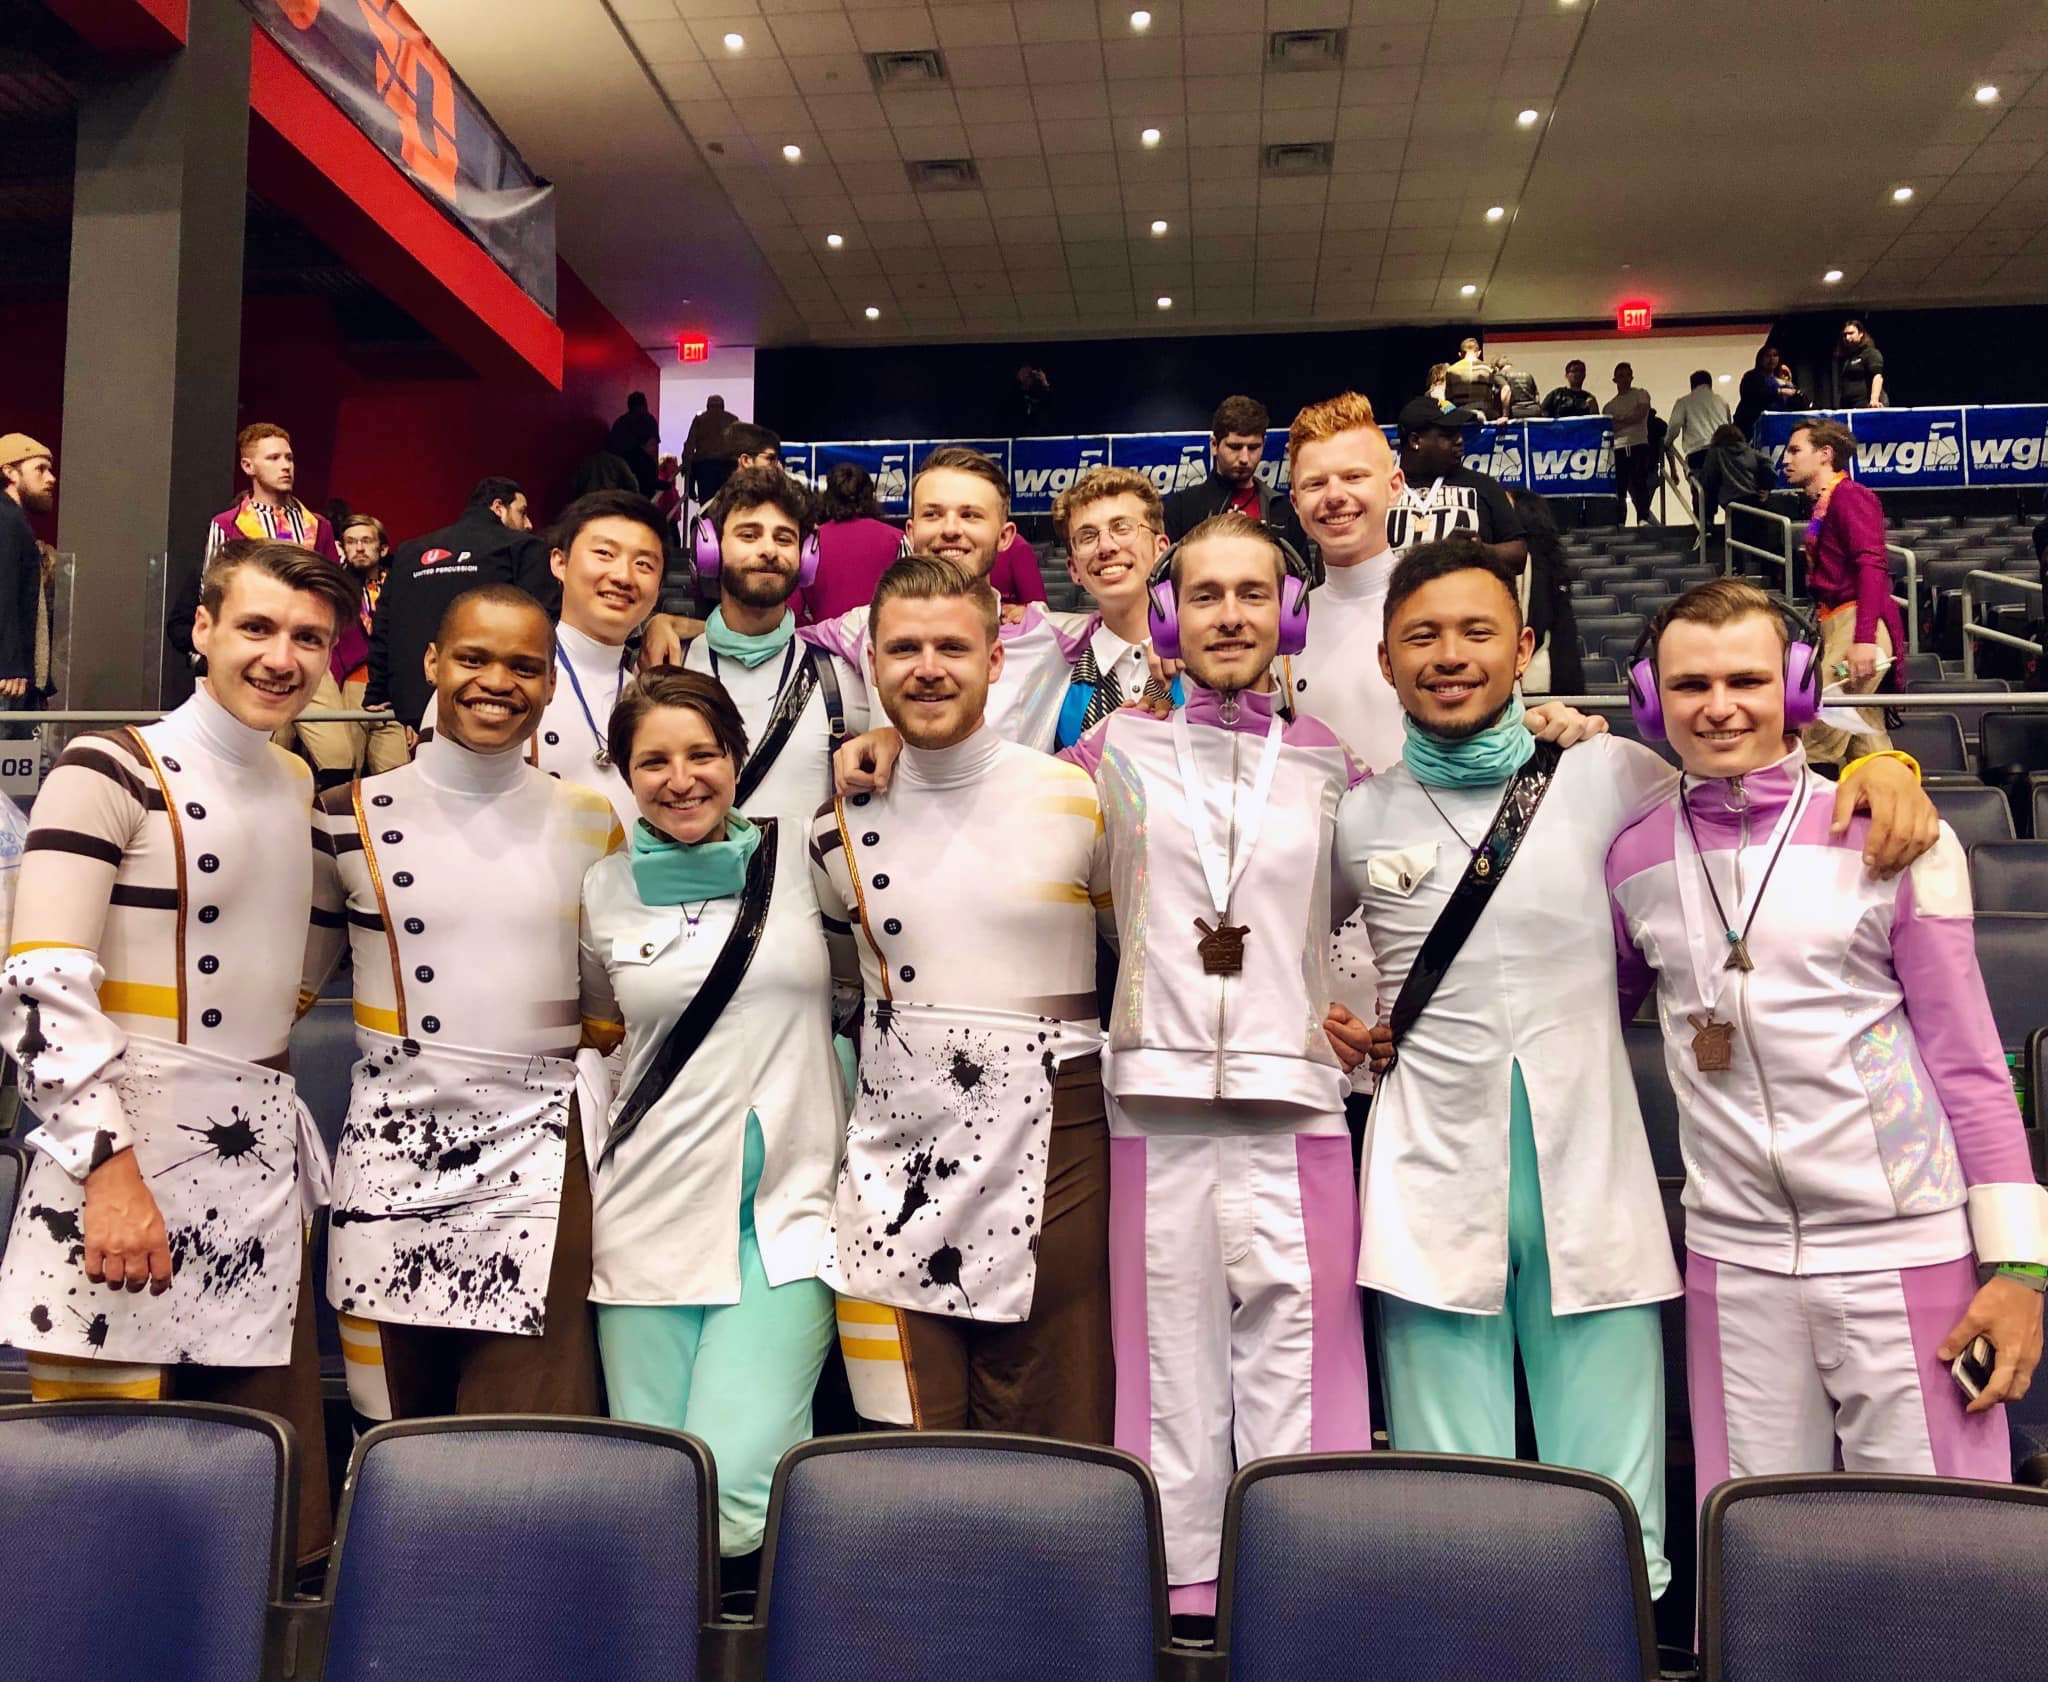 - Members of the 2019 Bluecoats Front Ensemble who march Rhythm X, Infinity Percussion, Monarch Independent, and Music City Mystique.